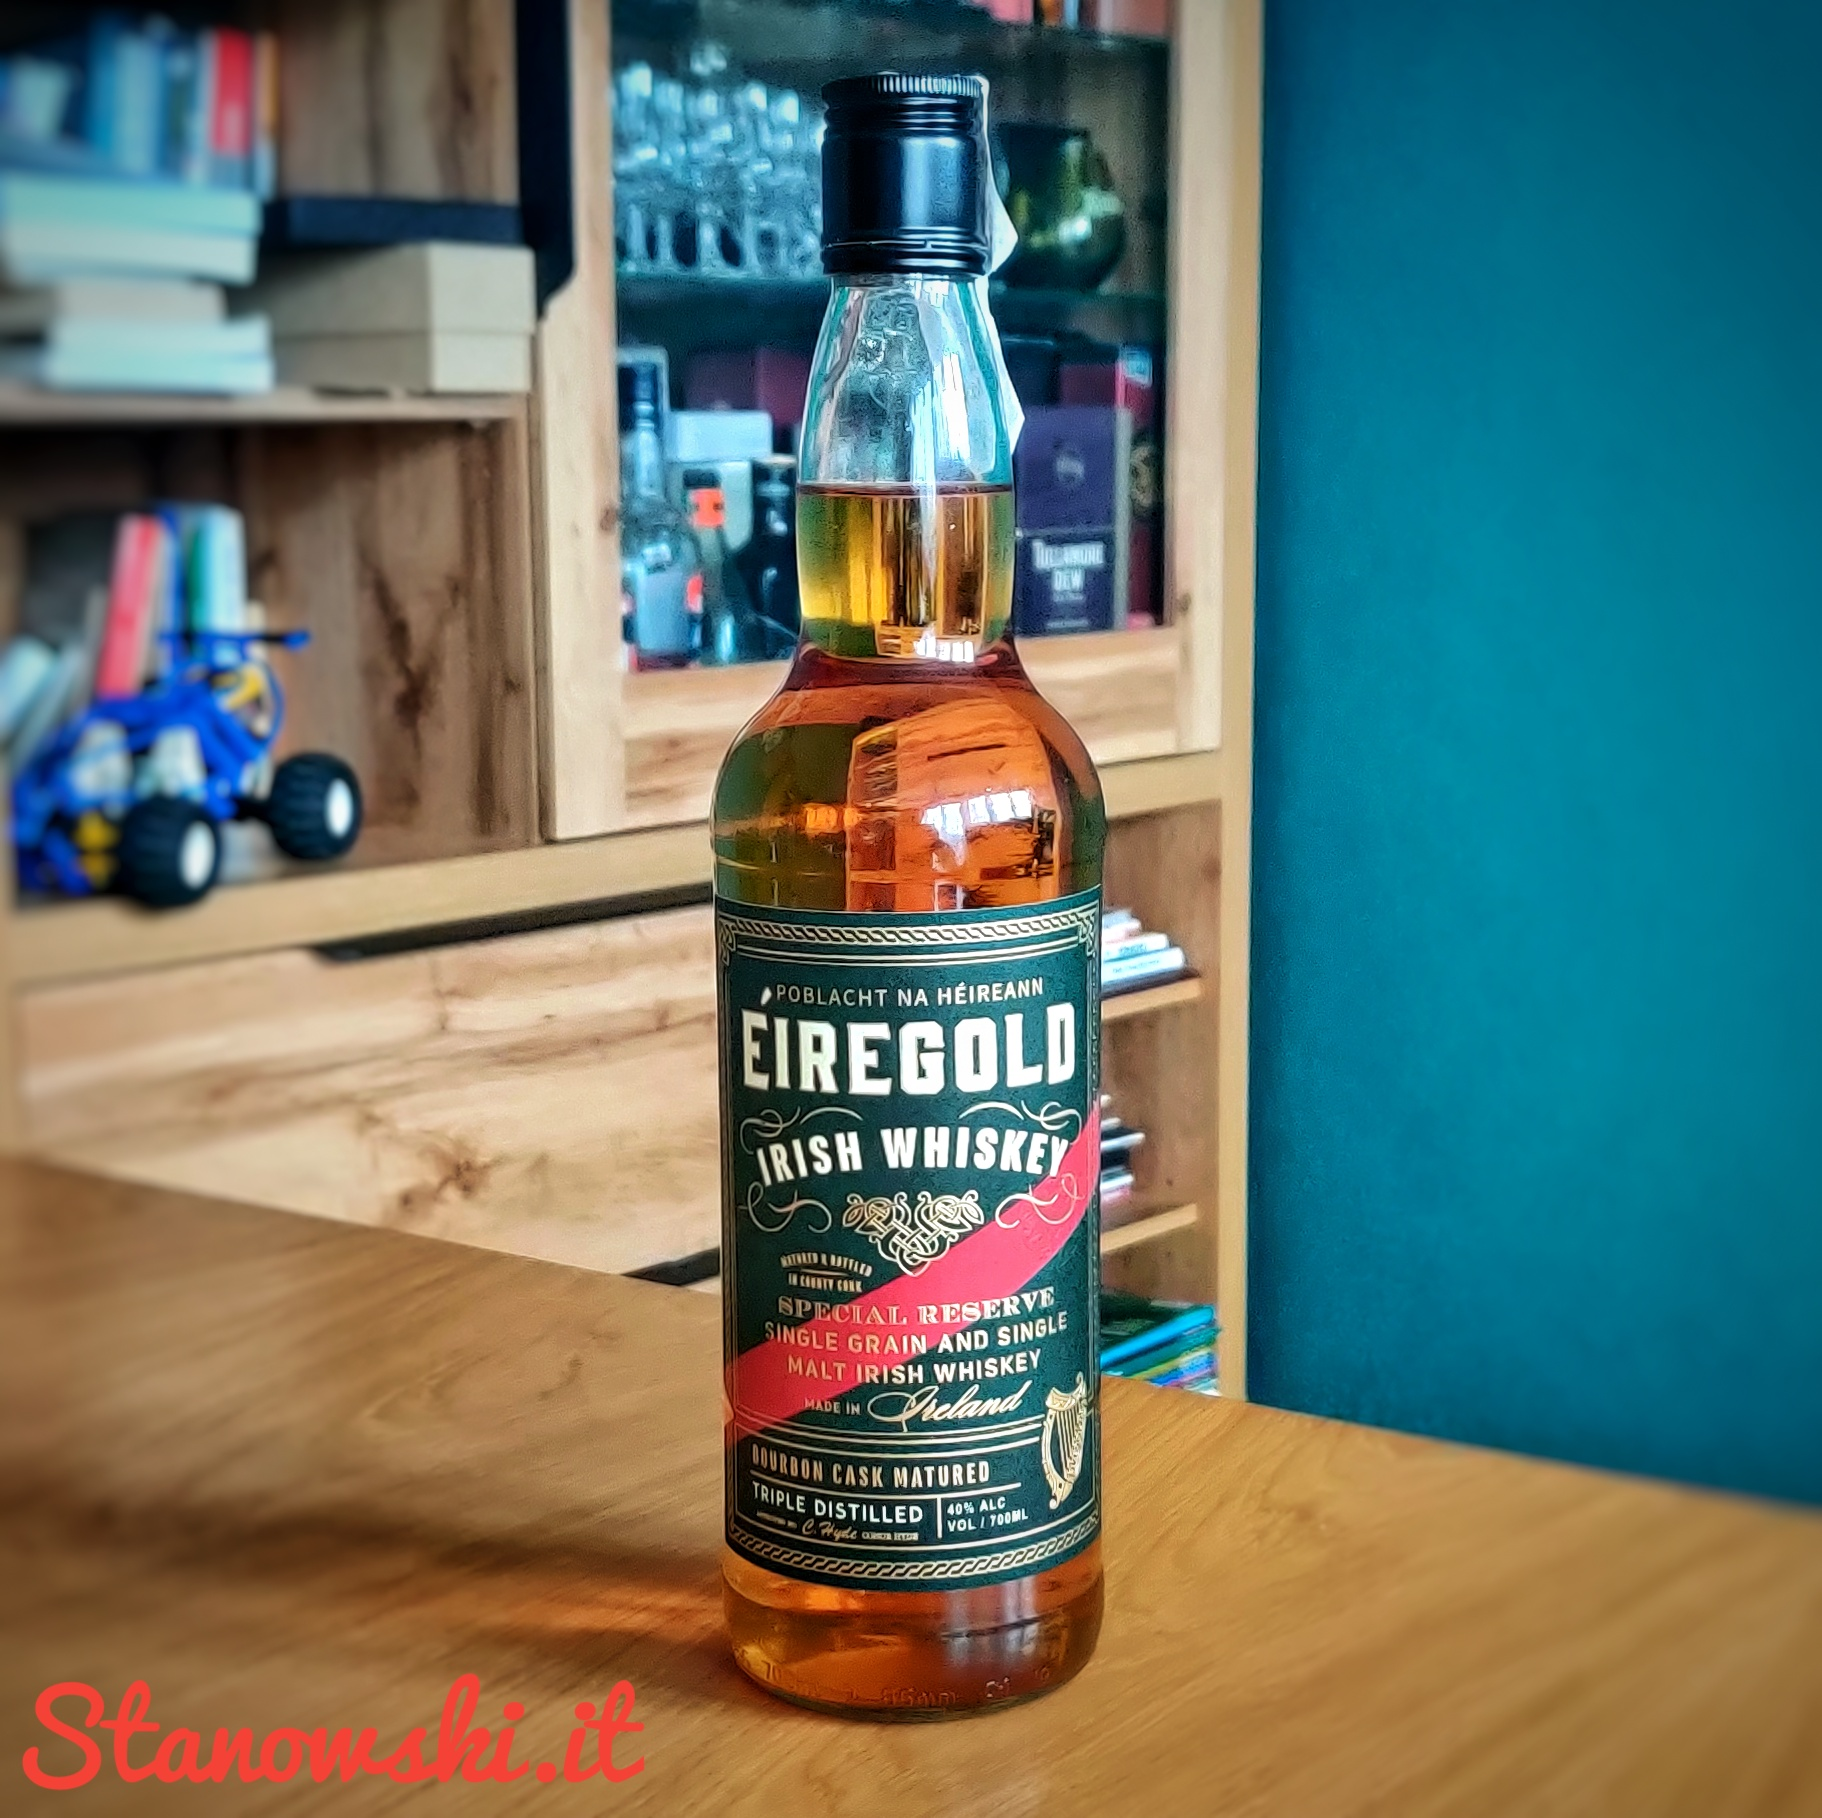 Eiregold Irish Whiskey